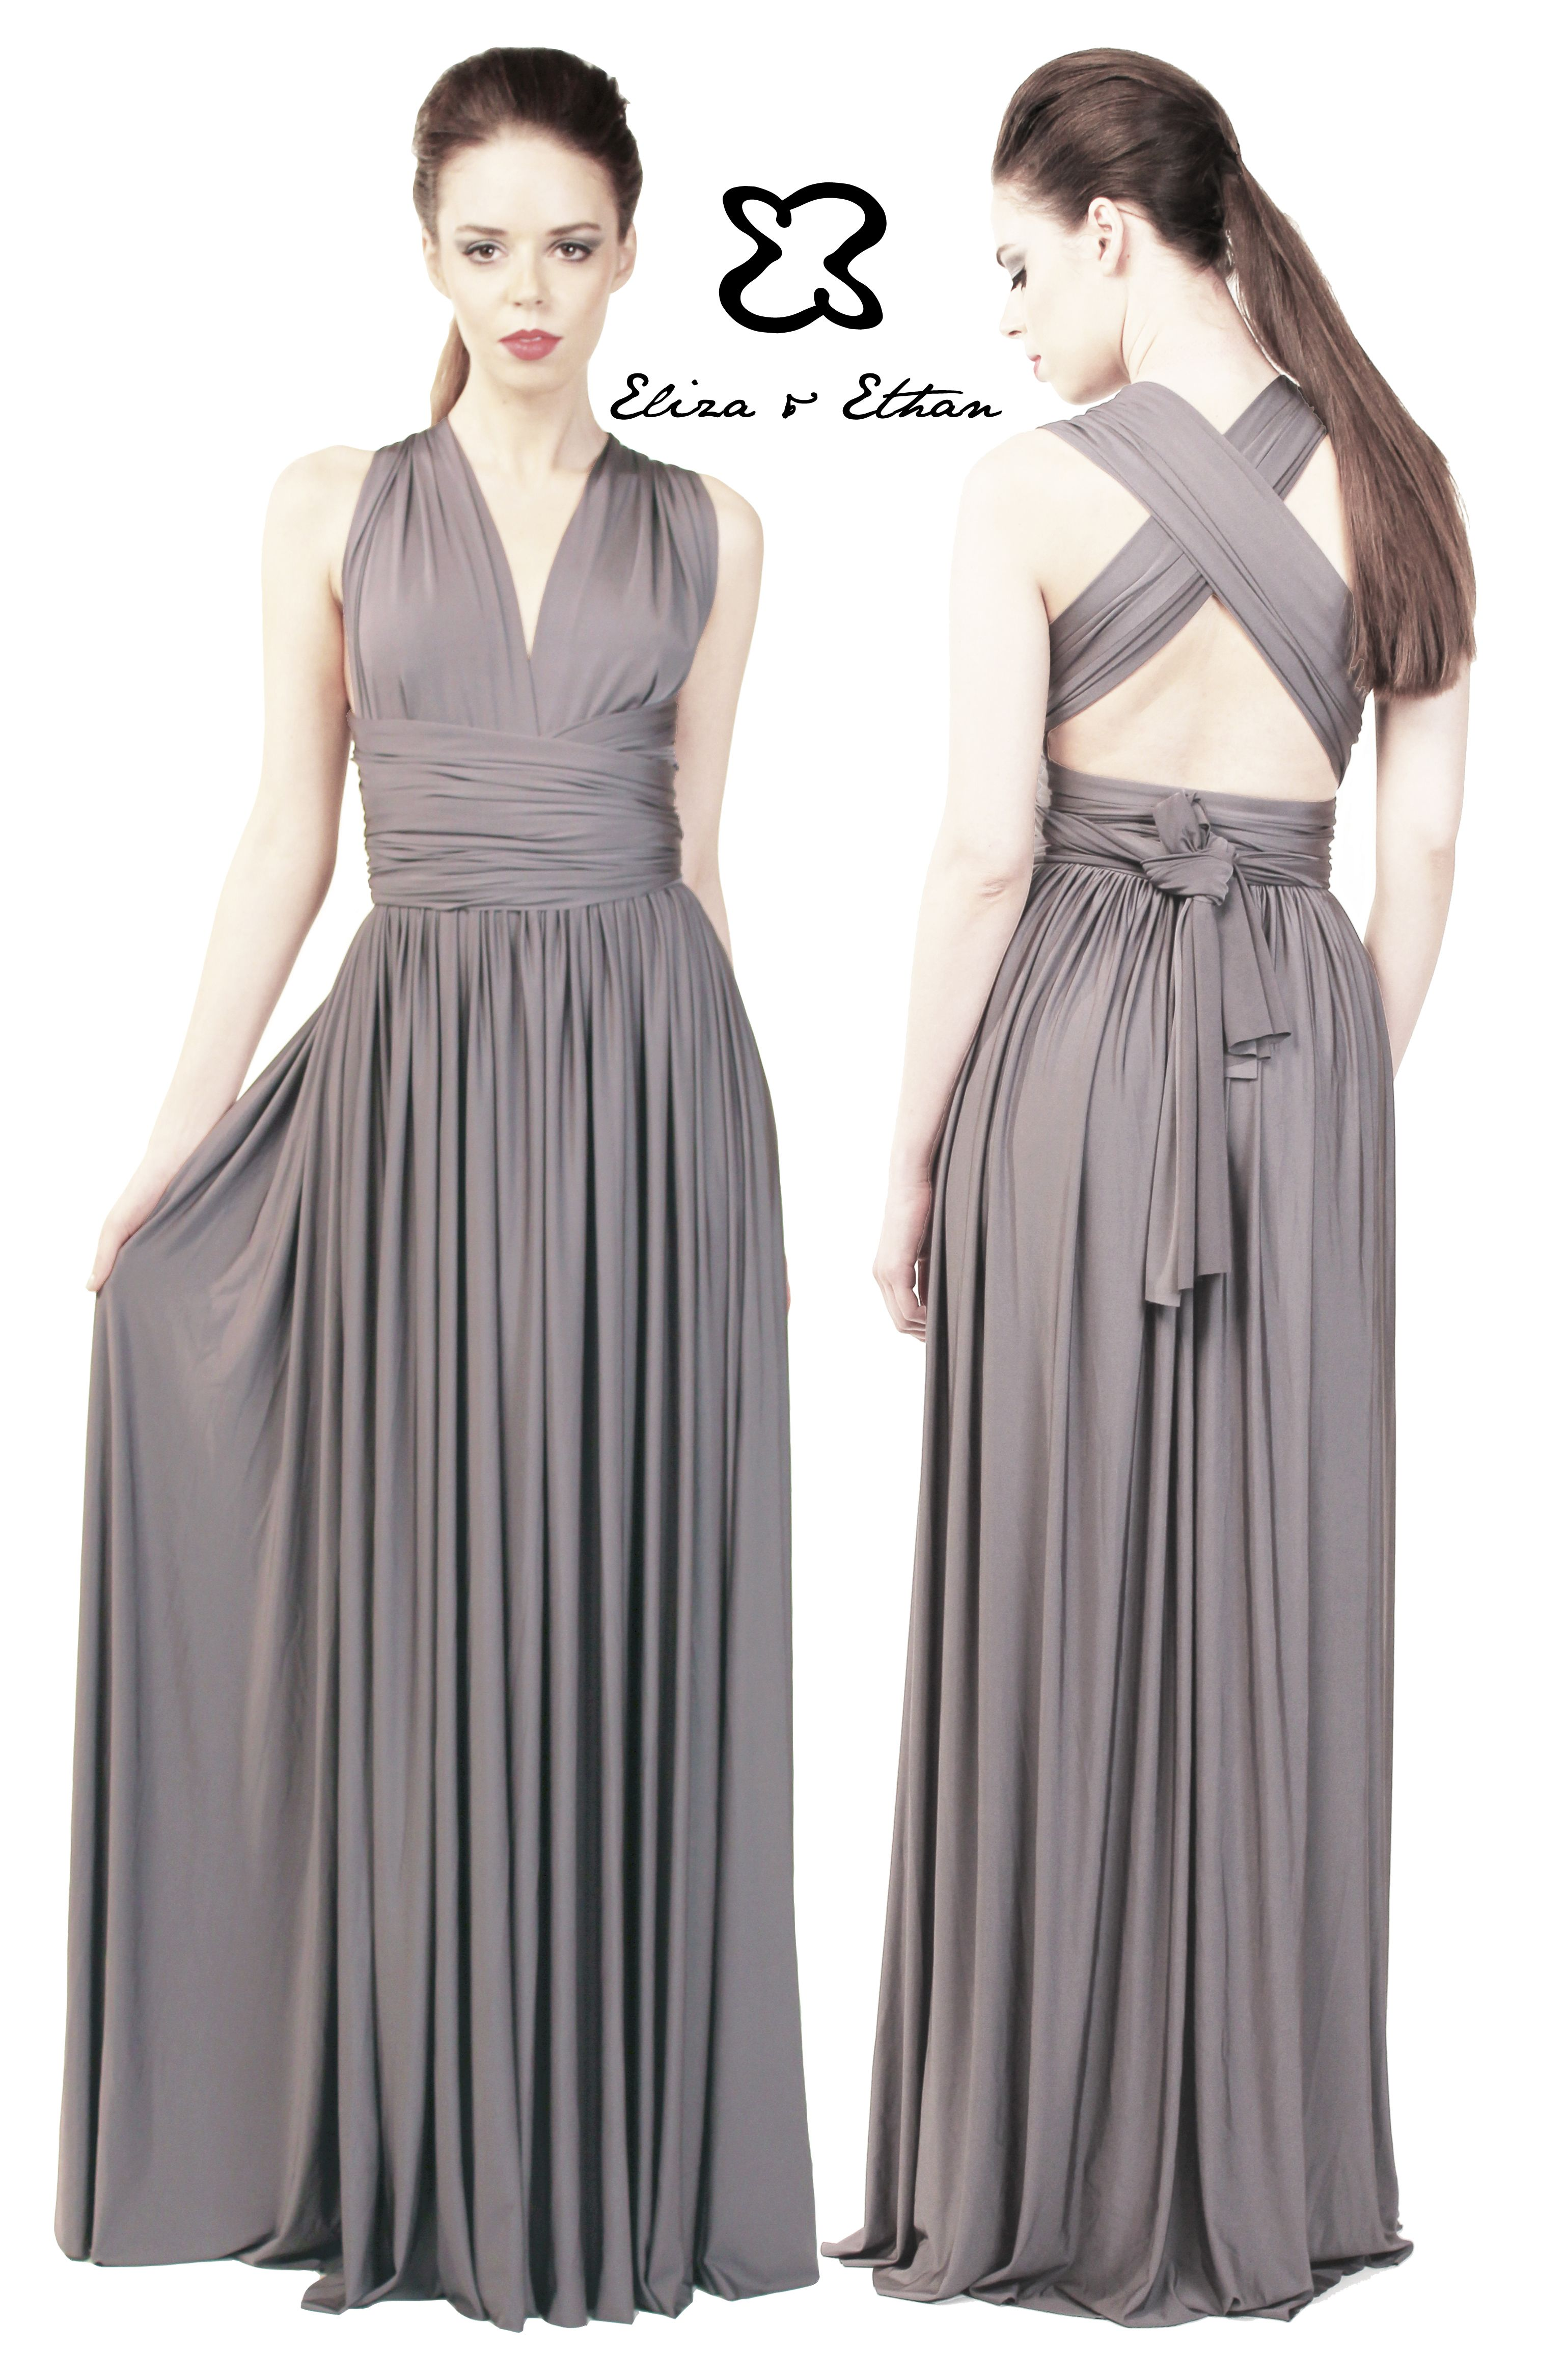 Available from Blush Brides and Grooms in Poulton 01253 932940 Eliza and Ethan - Multiway - Infinity - Bridesmaids Dresses - OneSize - Maxi MultiWrap Dress Color: Titanium